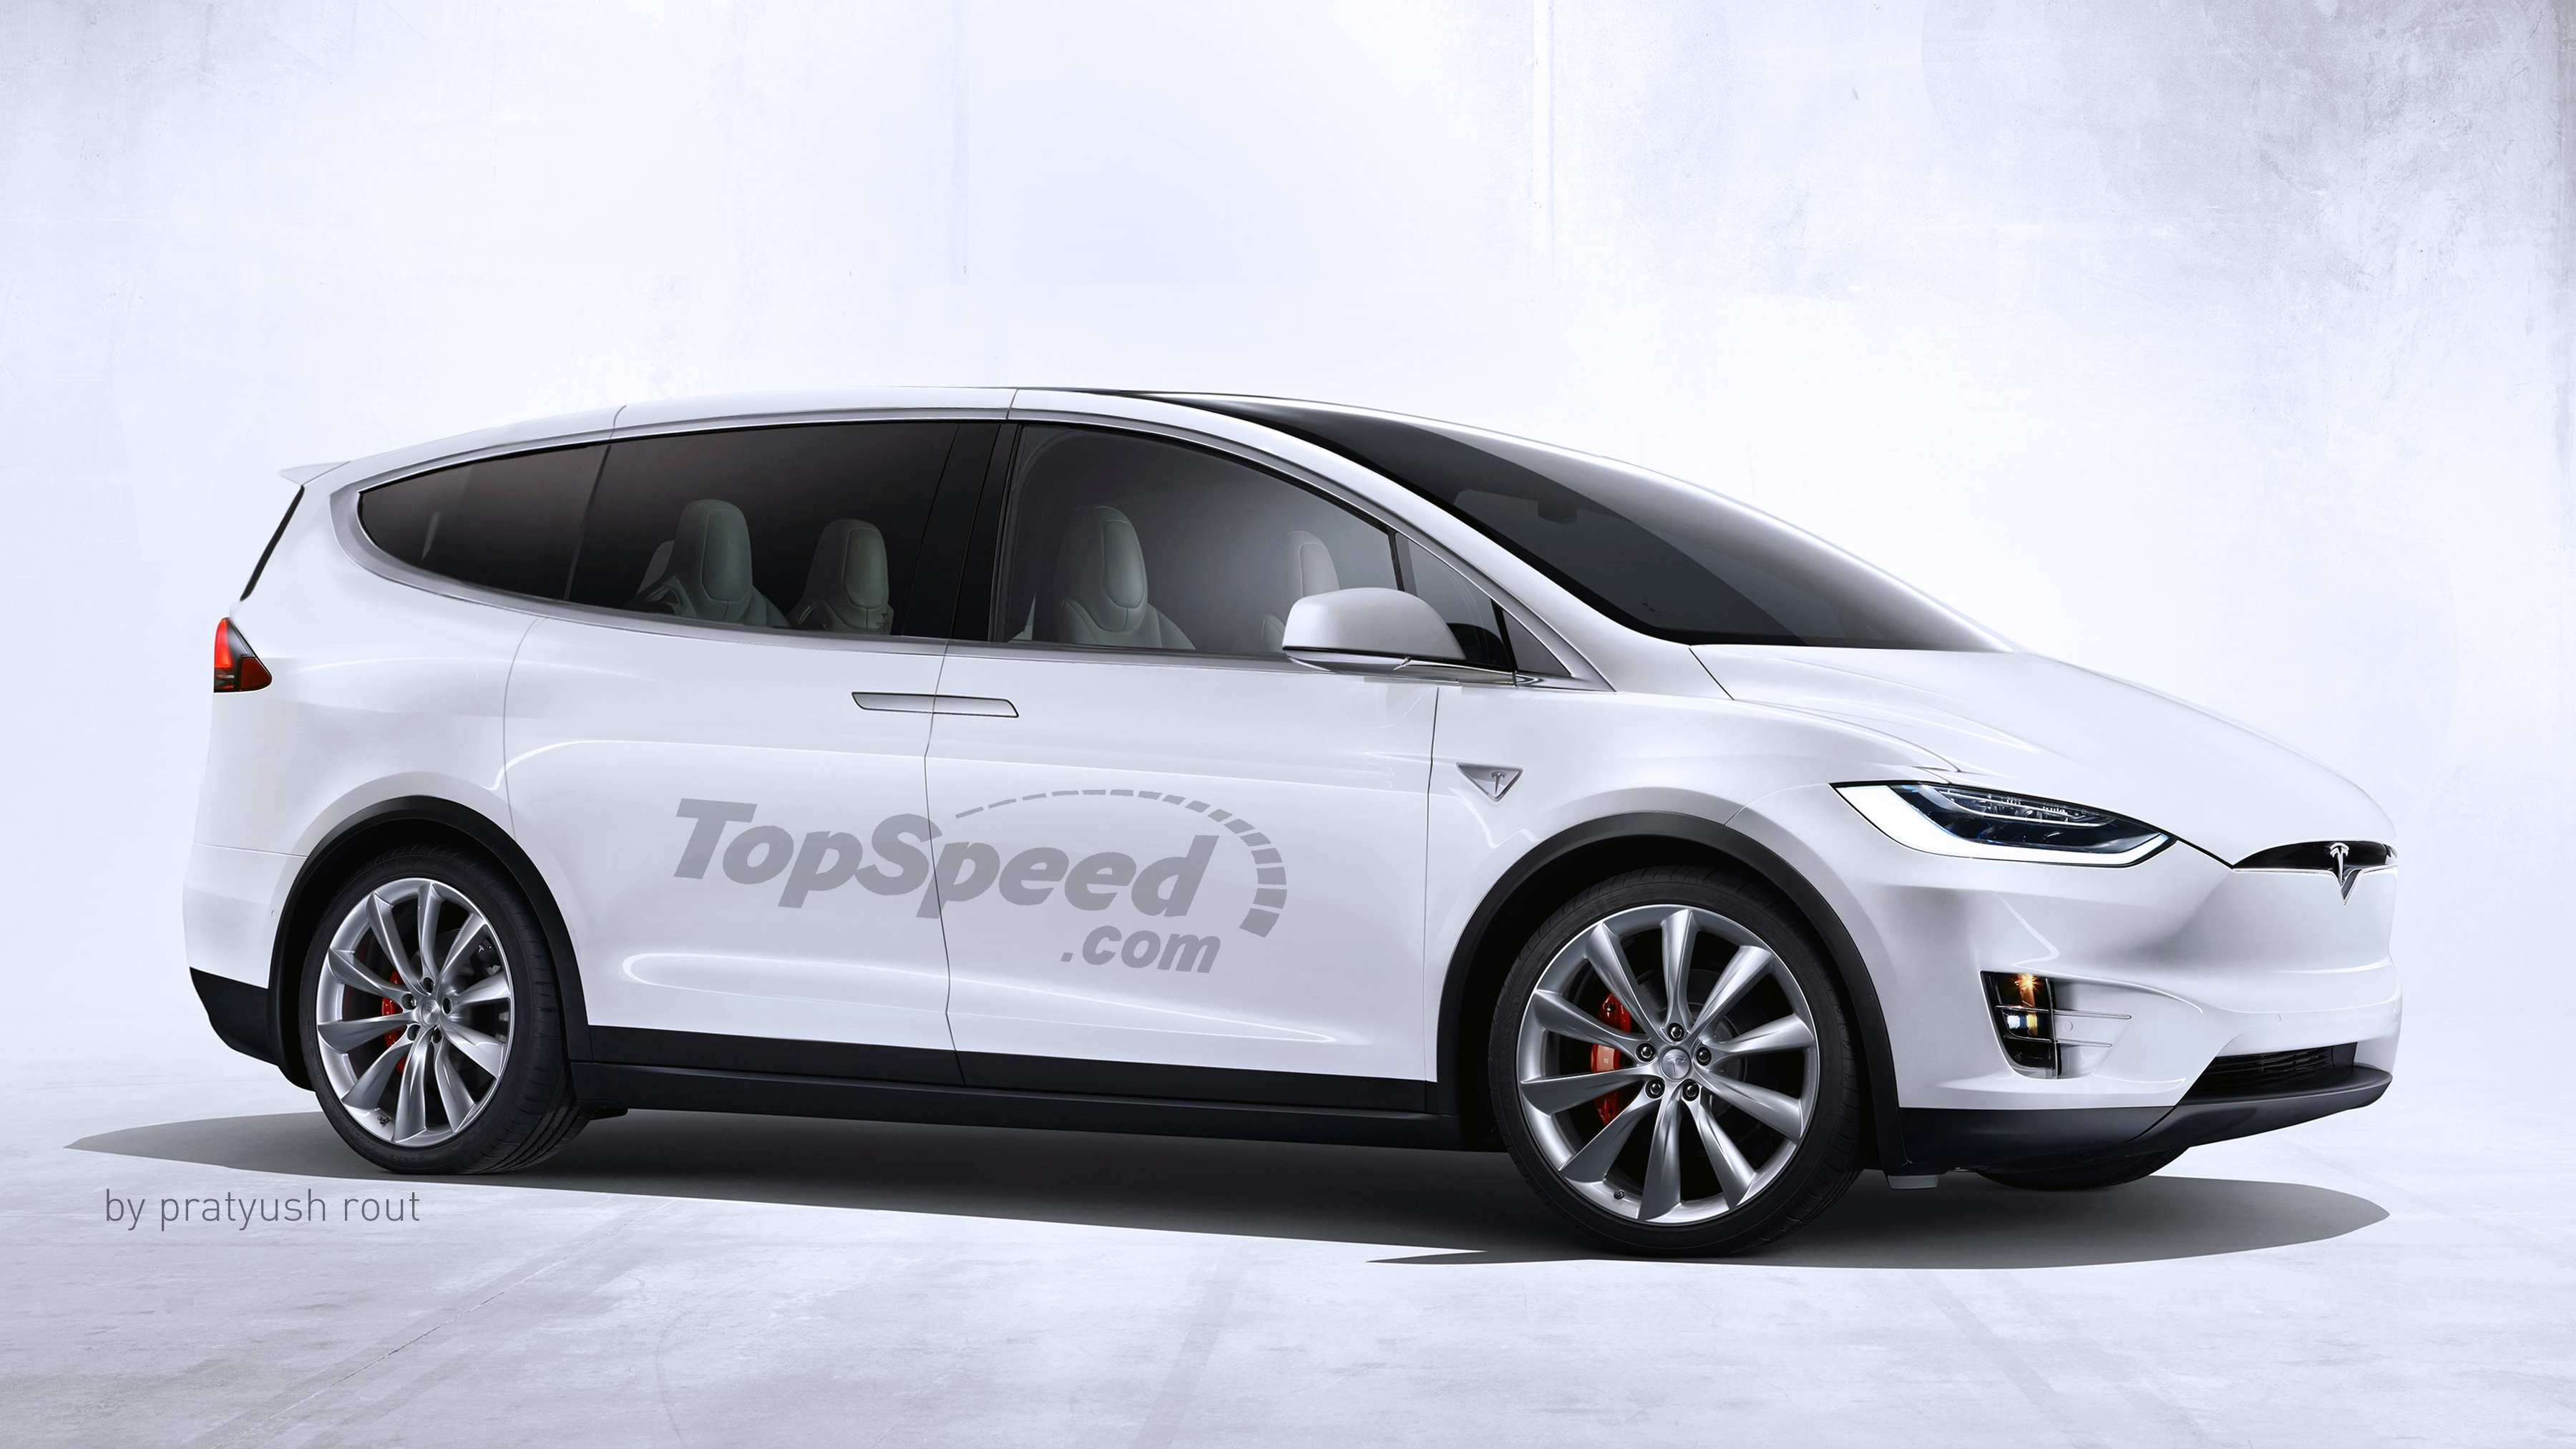 72 All New 2019 Tesla Minivan Wallpaper